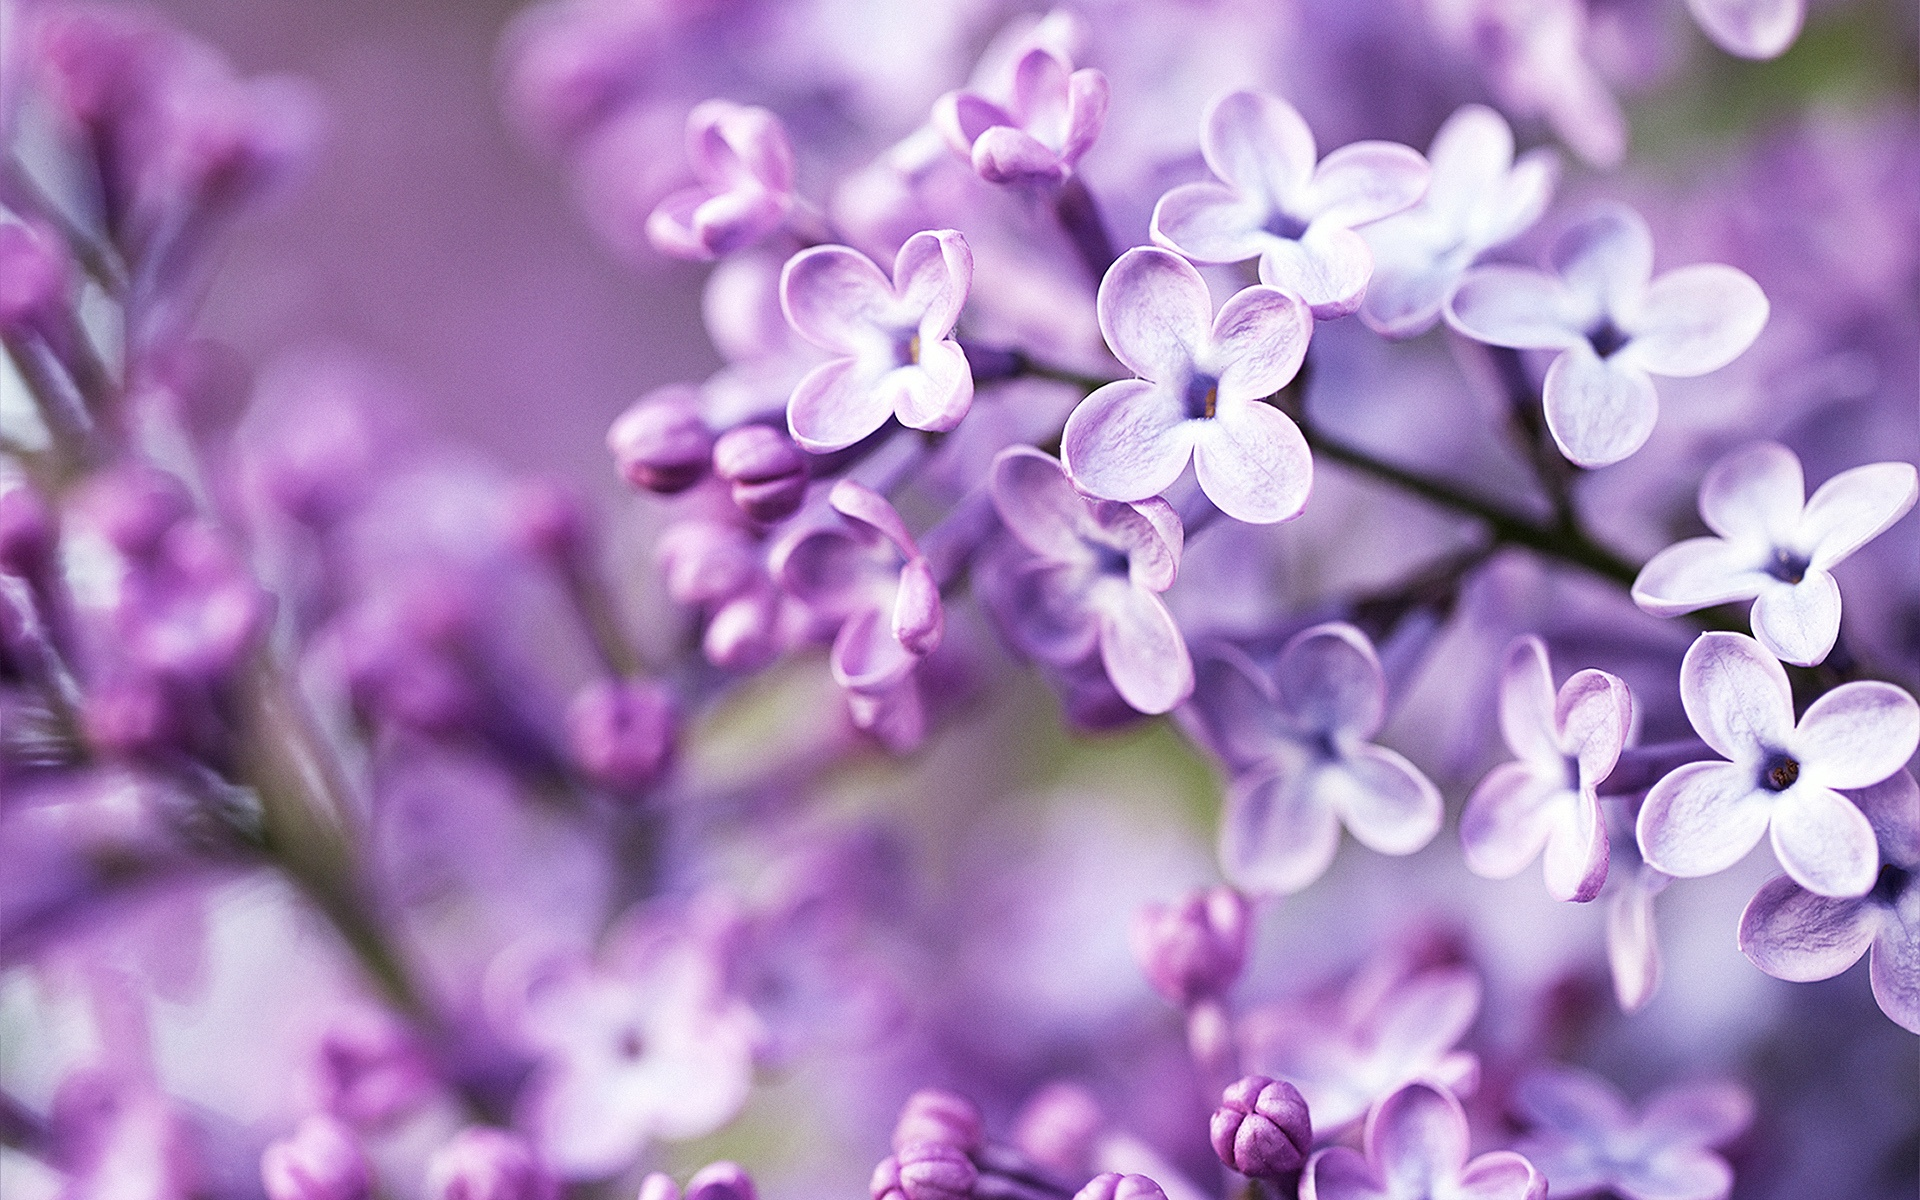 purple flowers wallpaper nature wallpapers for free download about, Natural flower